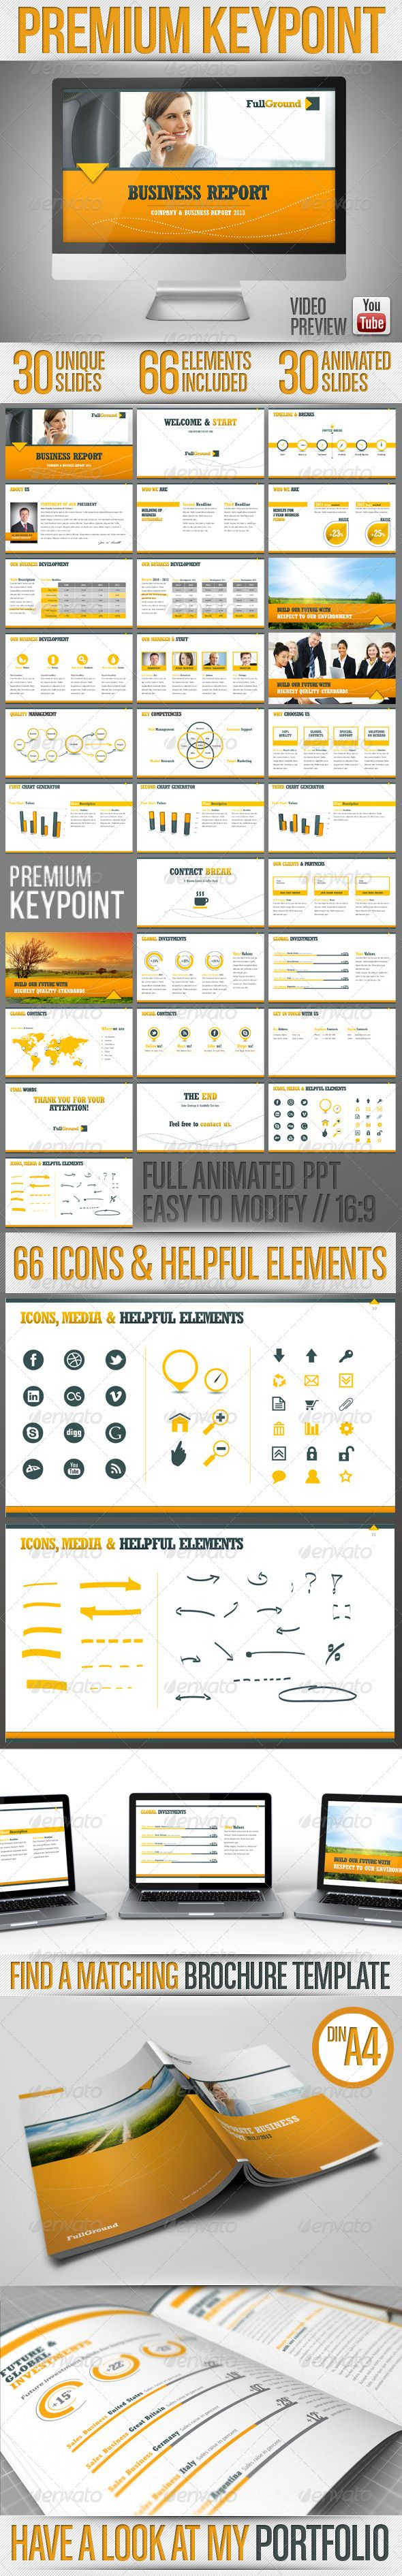 Fullground - Keypoint Presentation Template  - GraphicRiver Item for Sale